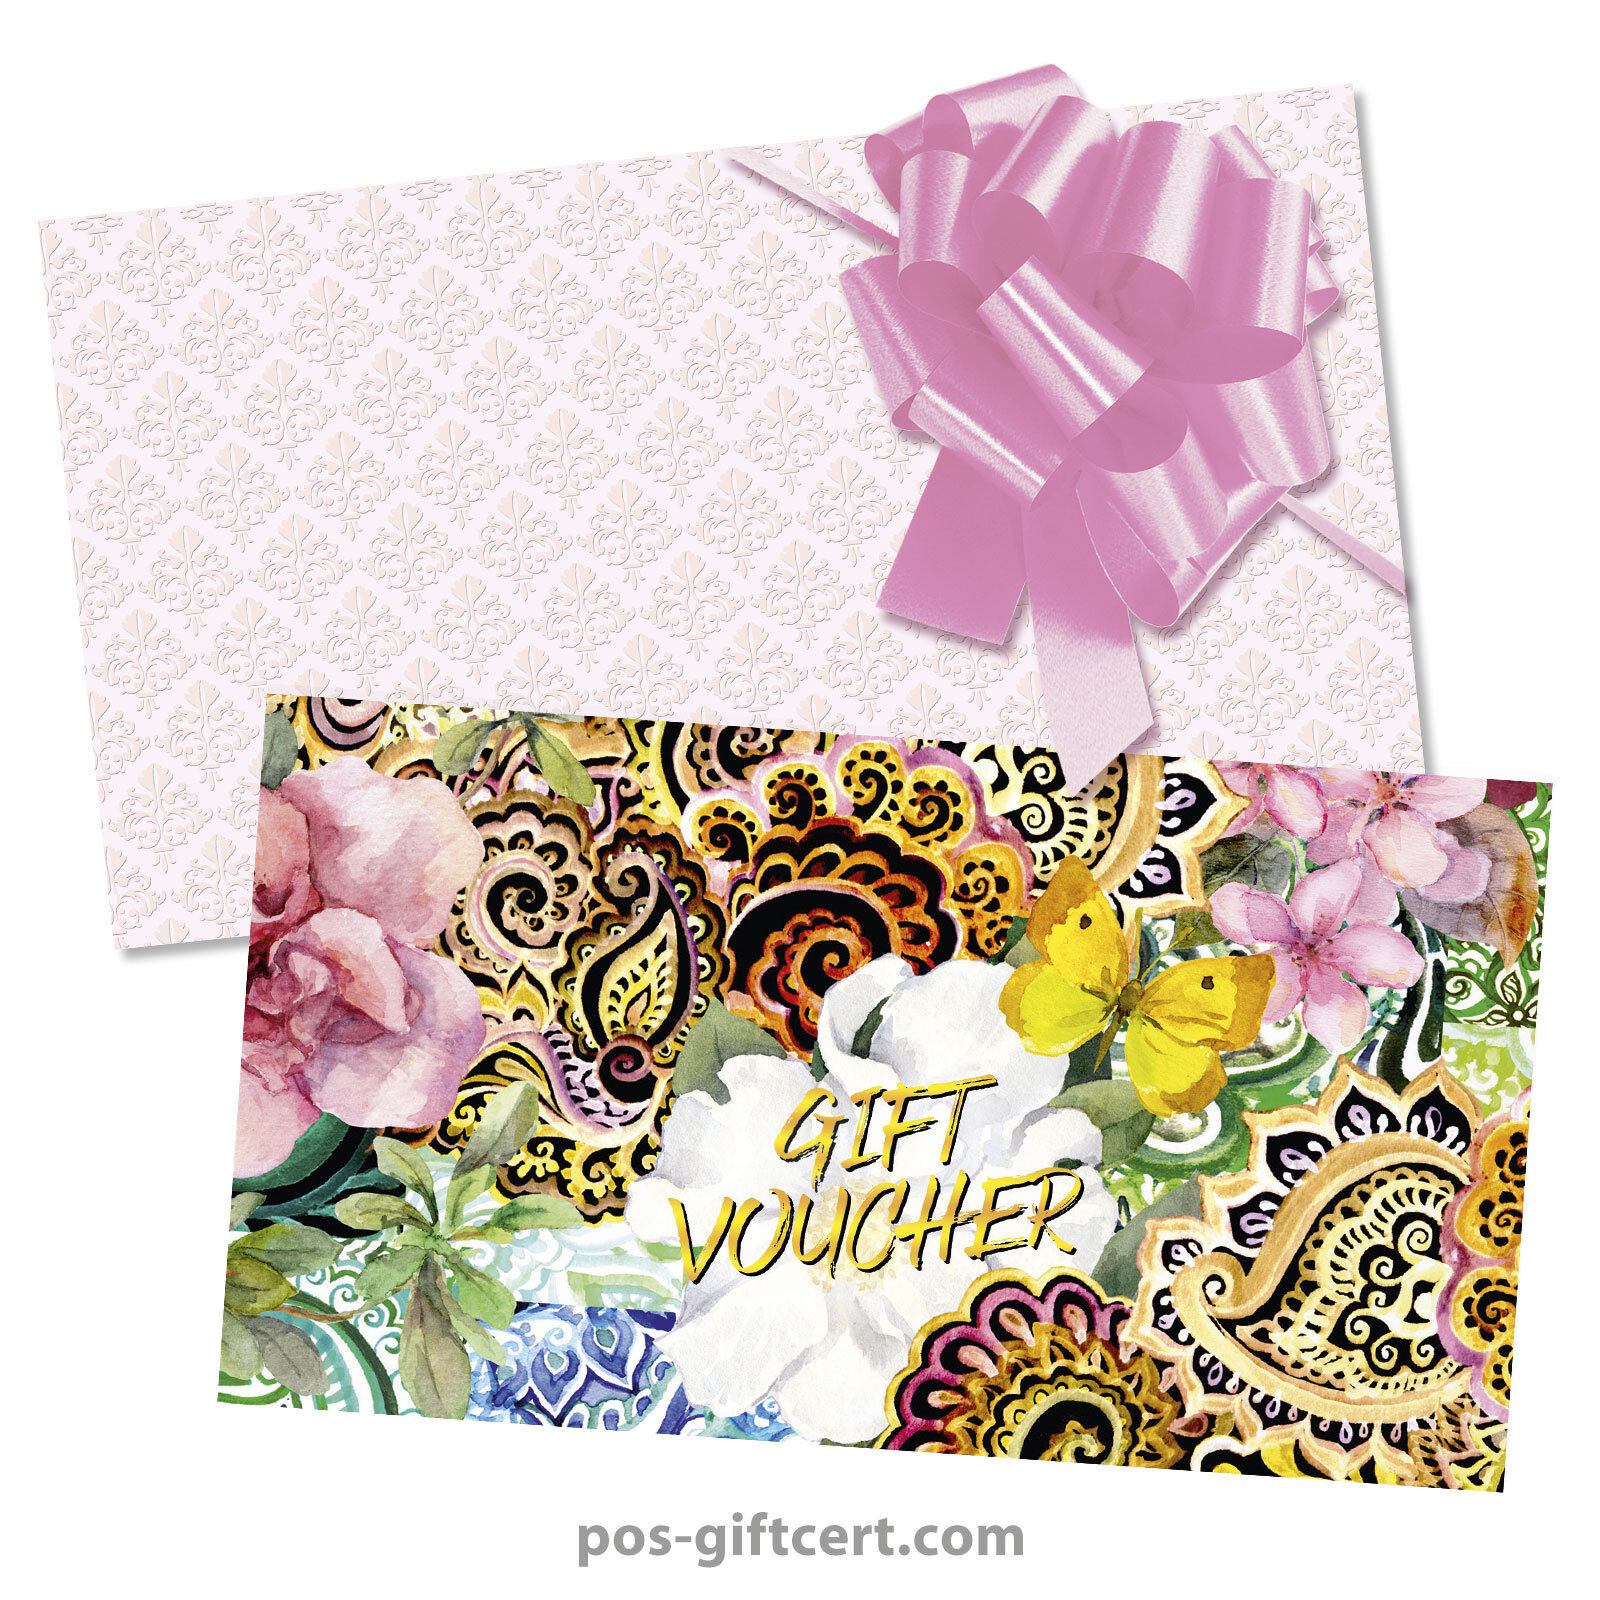 Universal Gift vouchers + envelopes + pull bows for all occasions FA264GB